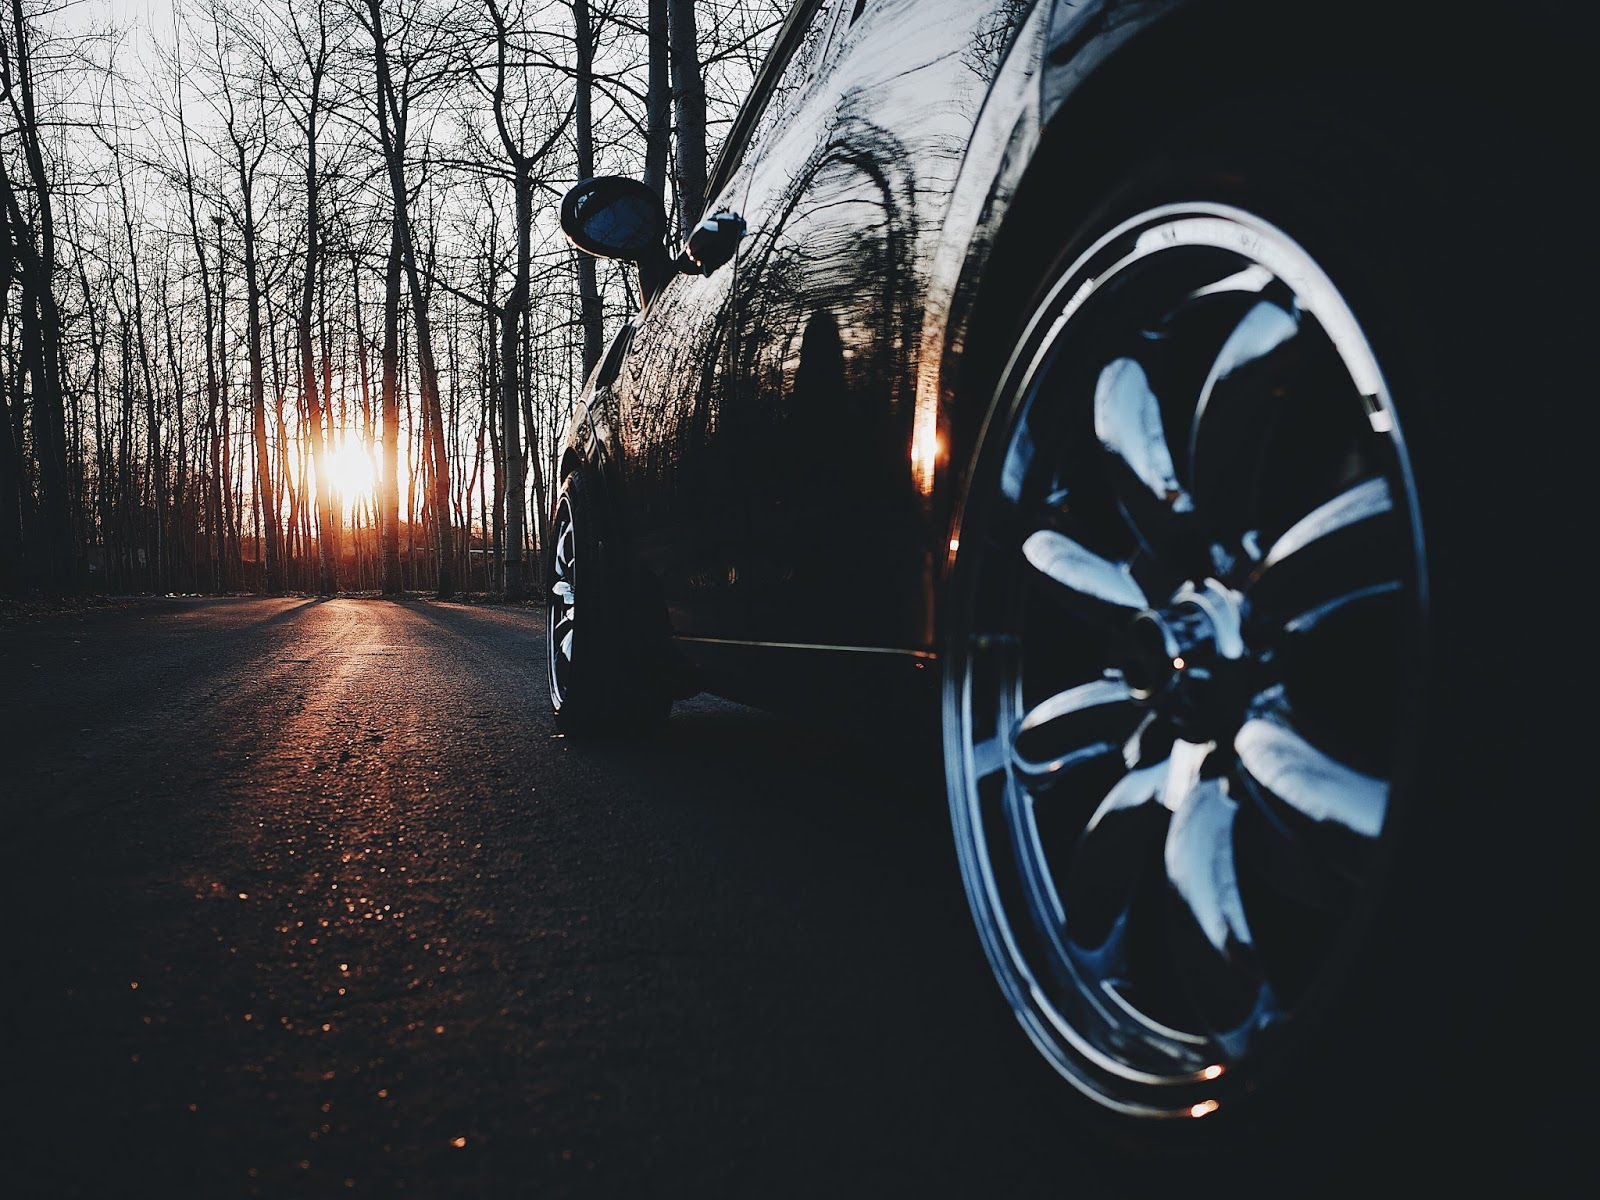 A black car parked up surrounded by trees and a sunset